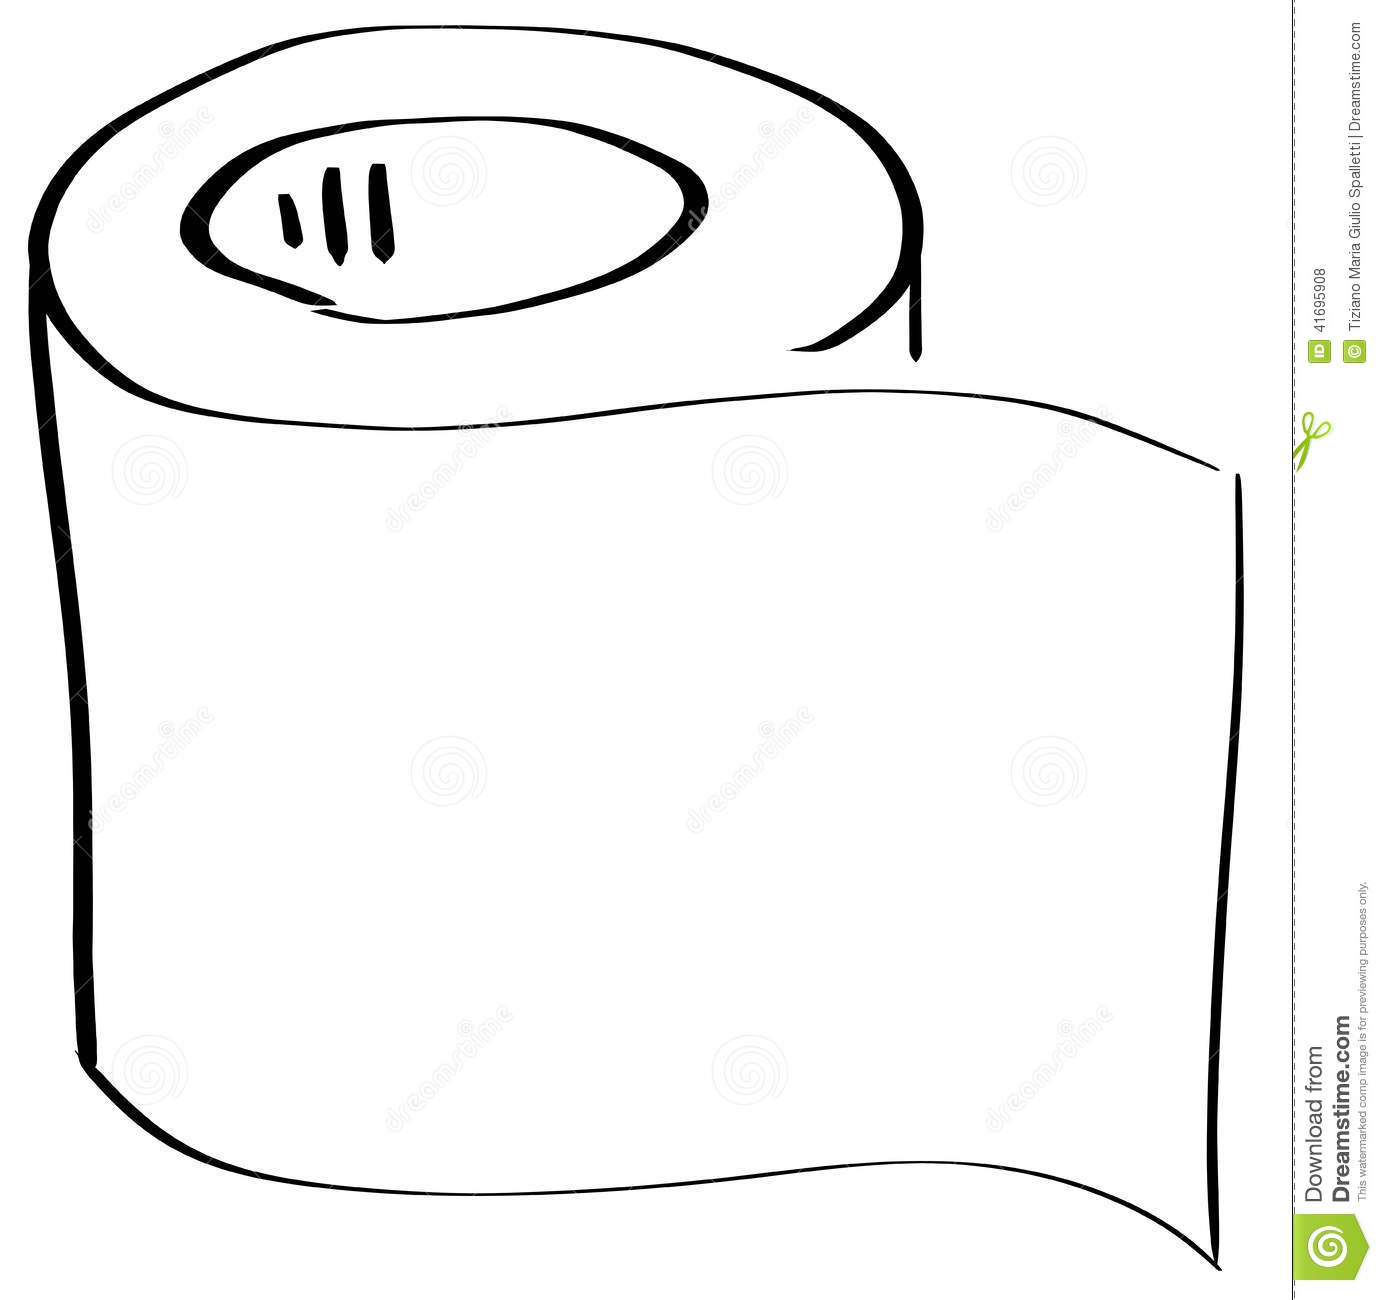 Stylized Roll Of Toilet Paper Isolated Stock Illustration ...